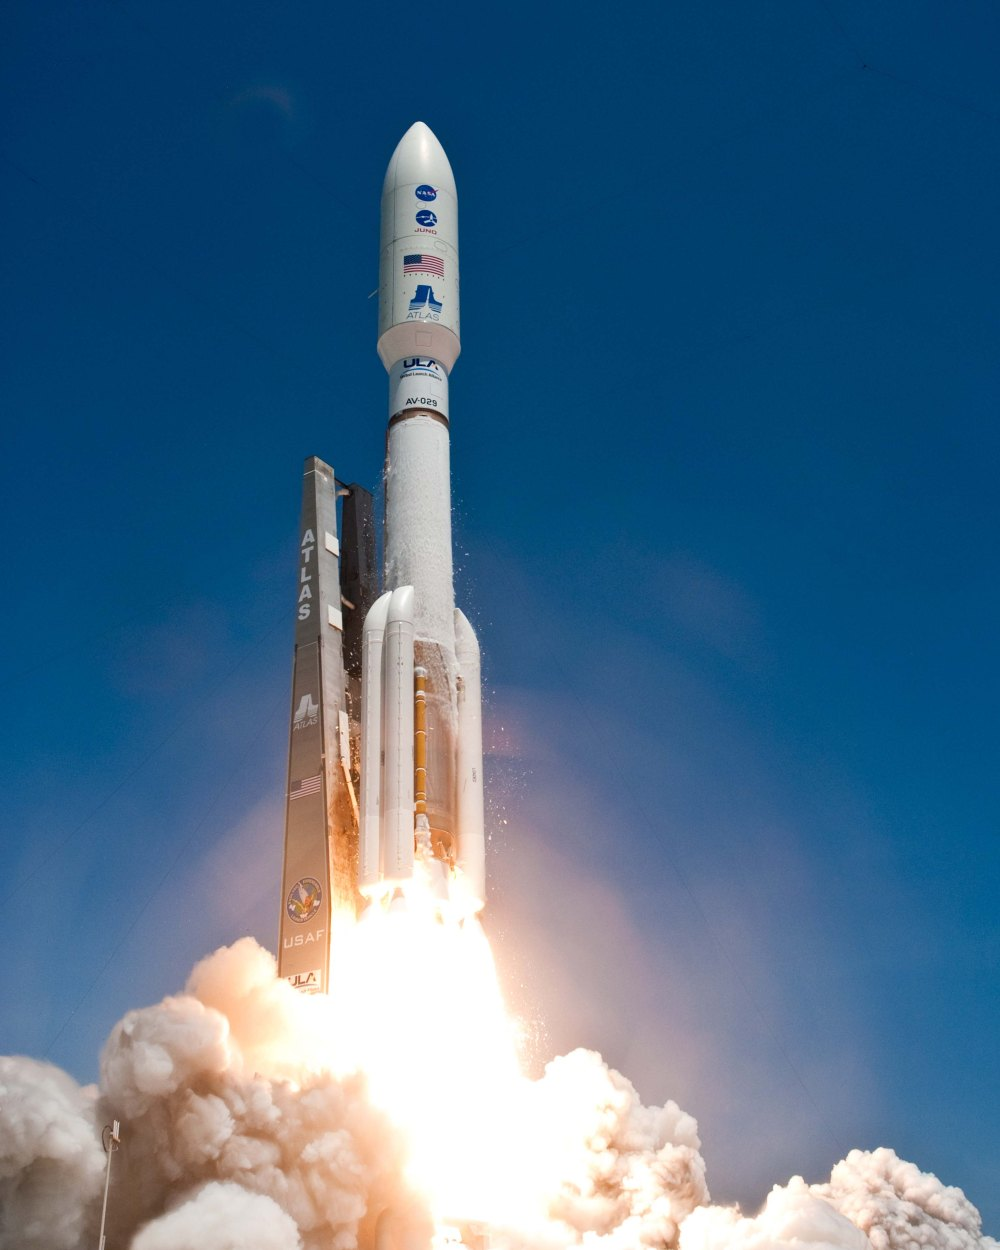 Launch of Atlas V Juno from Cape Canaveral AFS